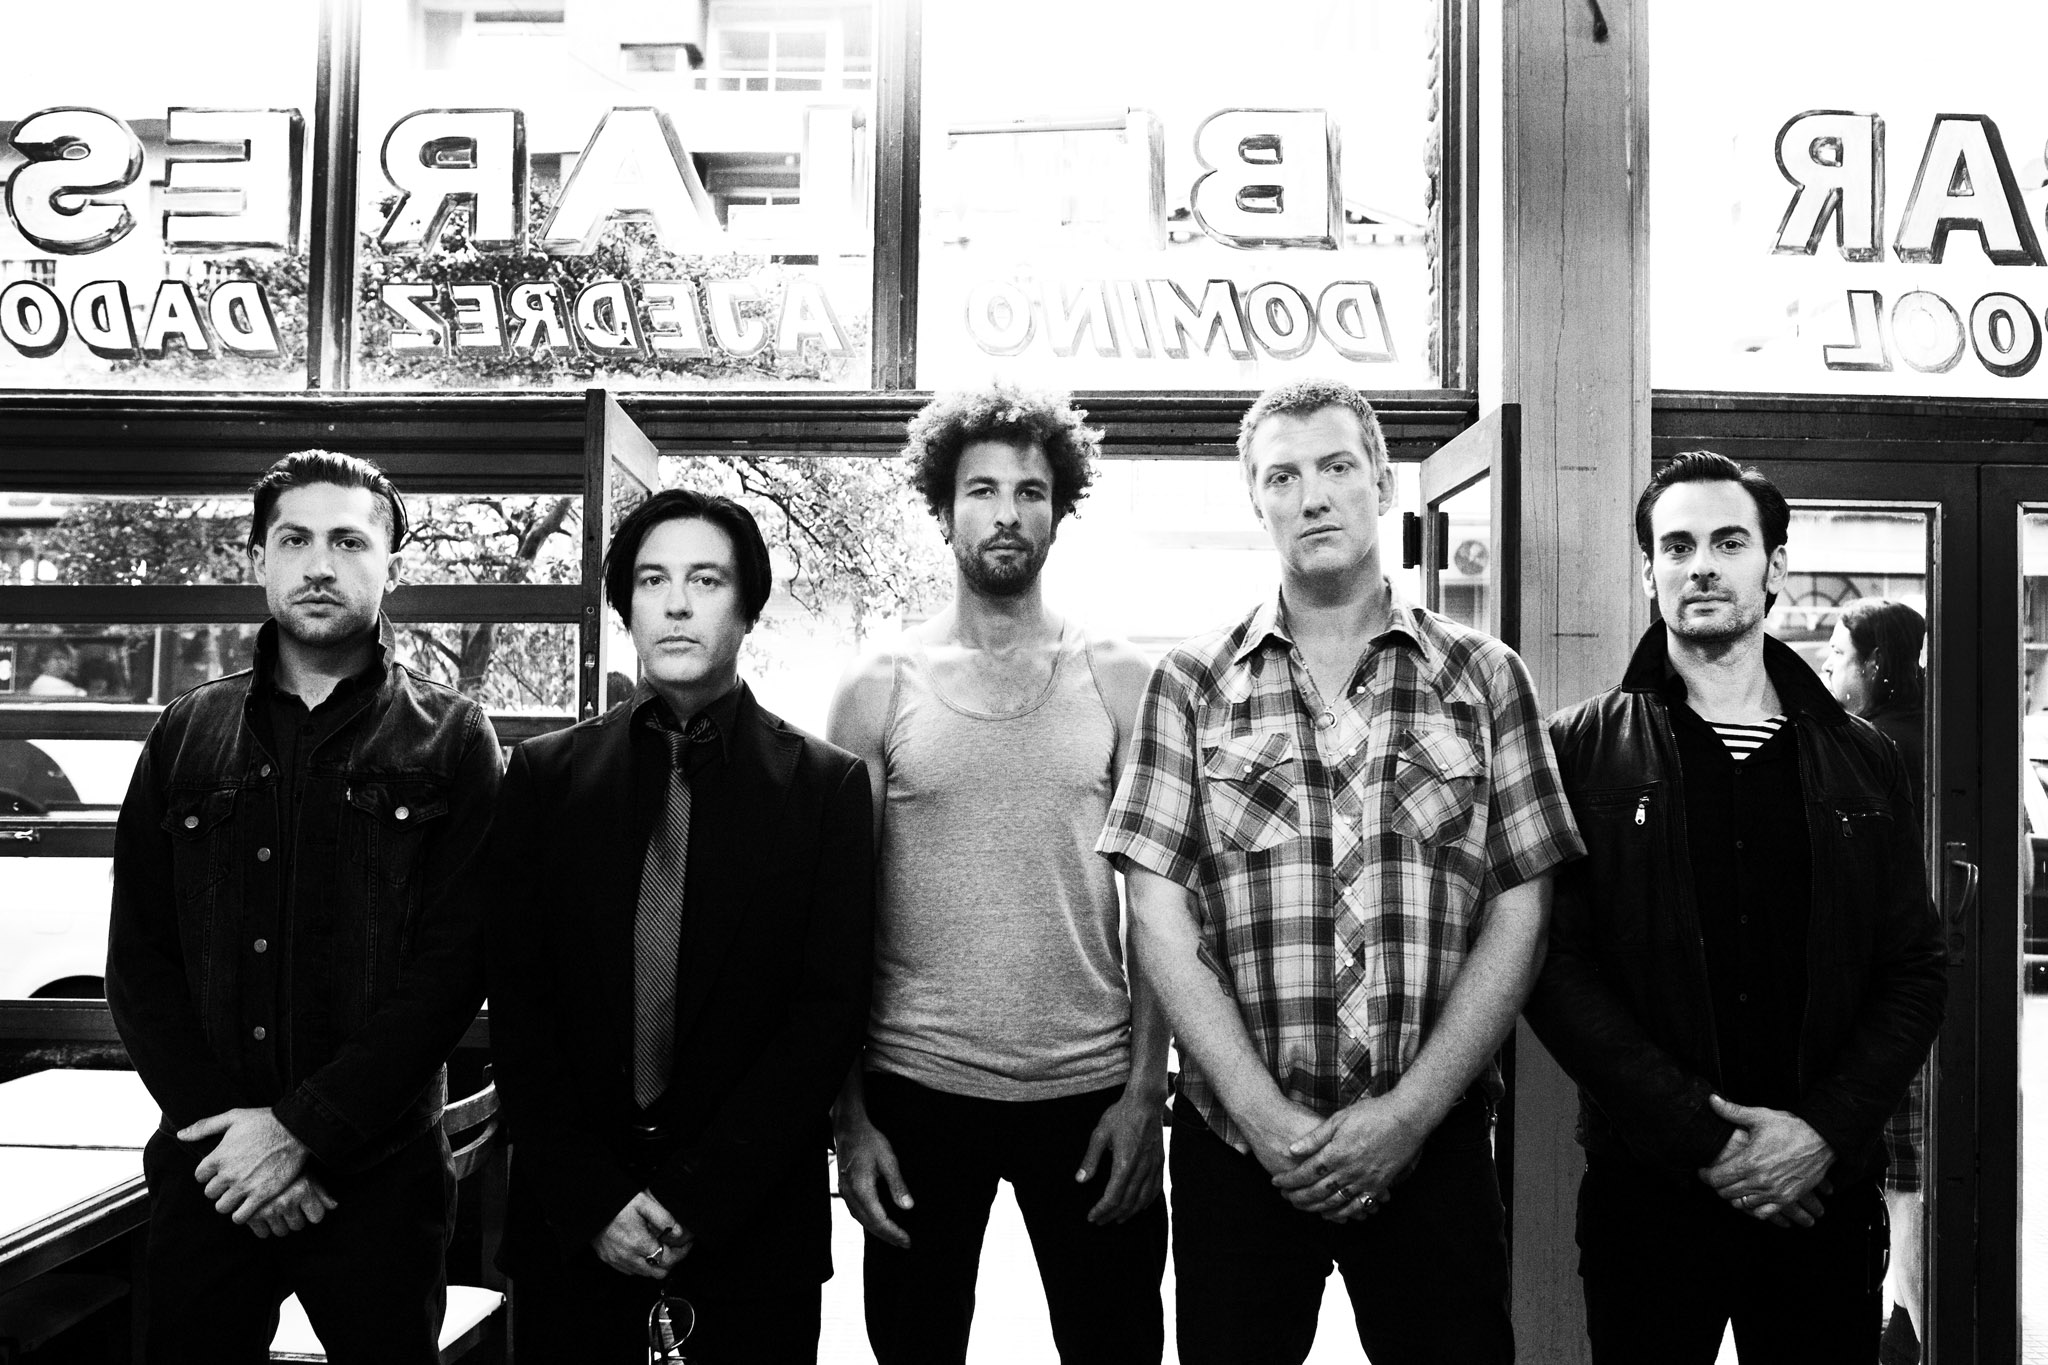 So, it looks like that new Queens of the Stone Age album is finished